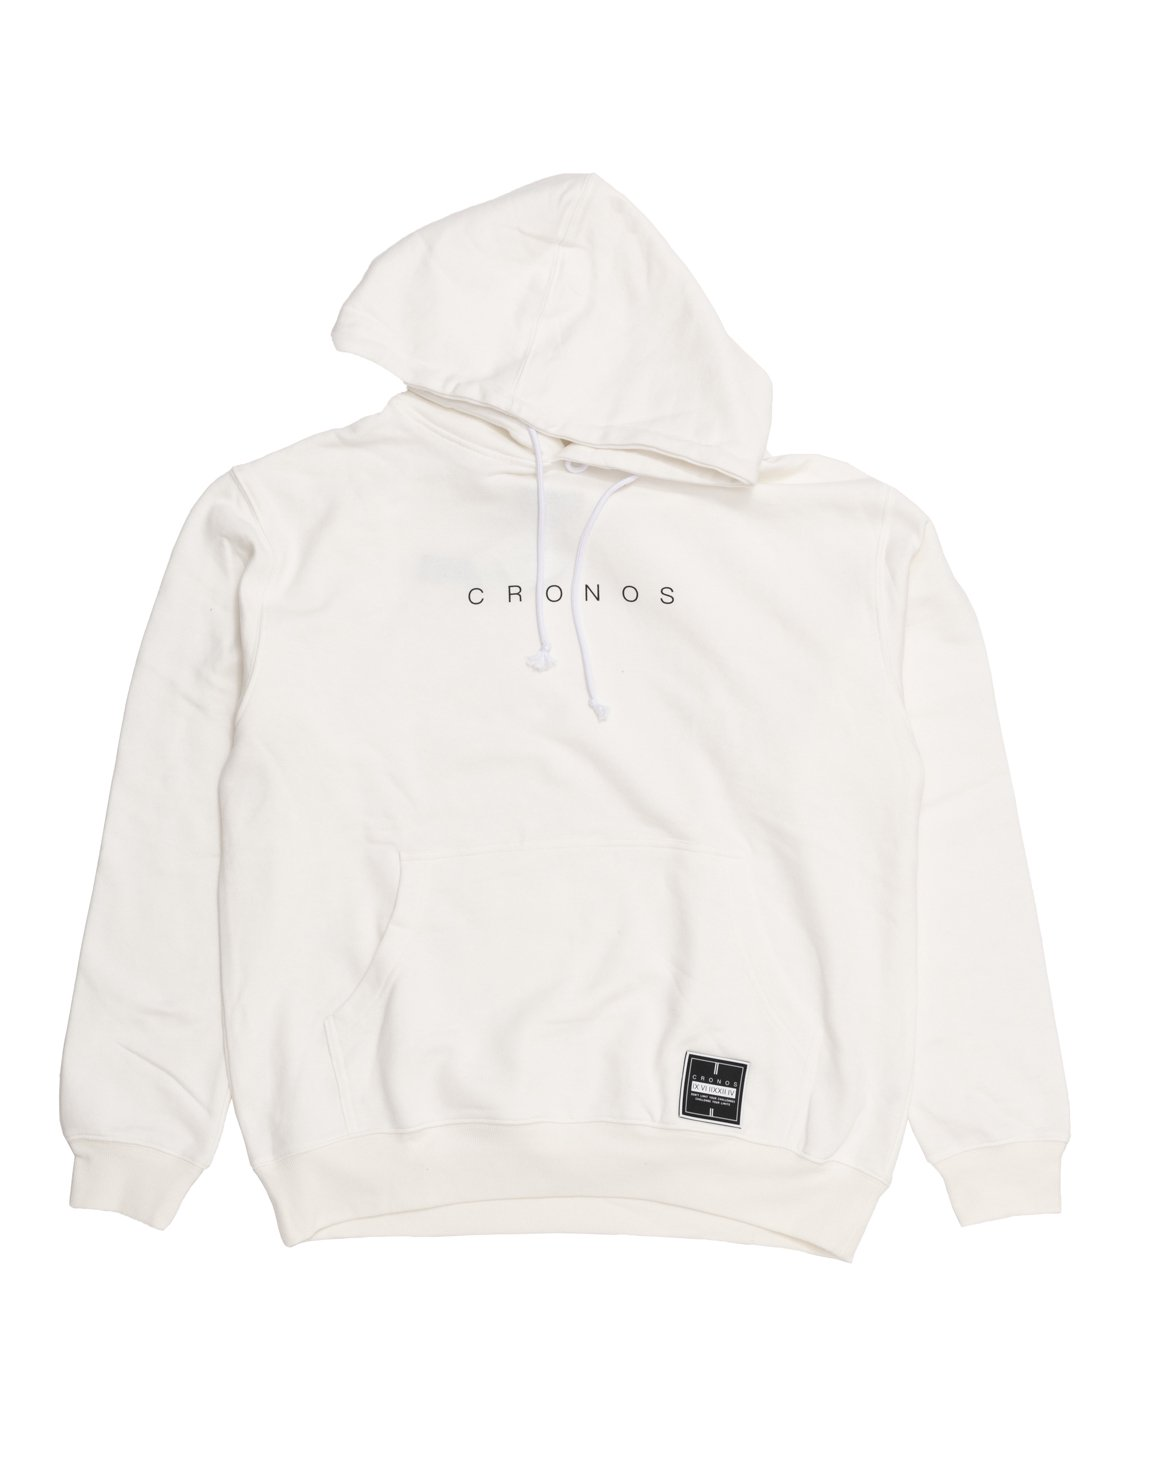 CRONOS NUMERALS PATCH PARKA 【WHITE】